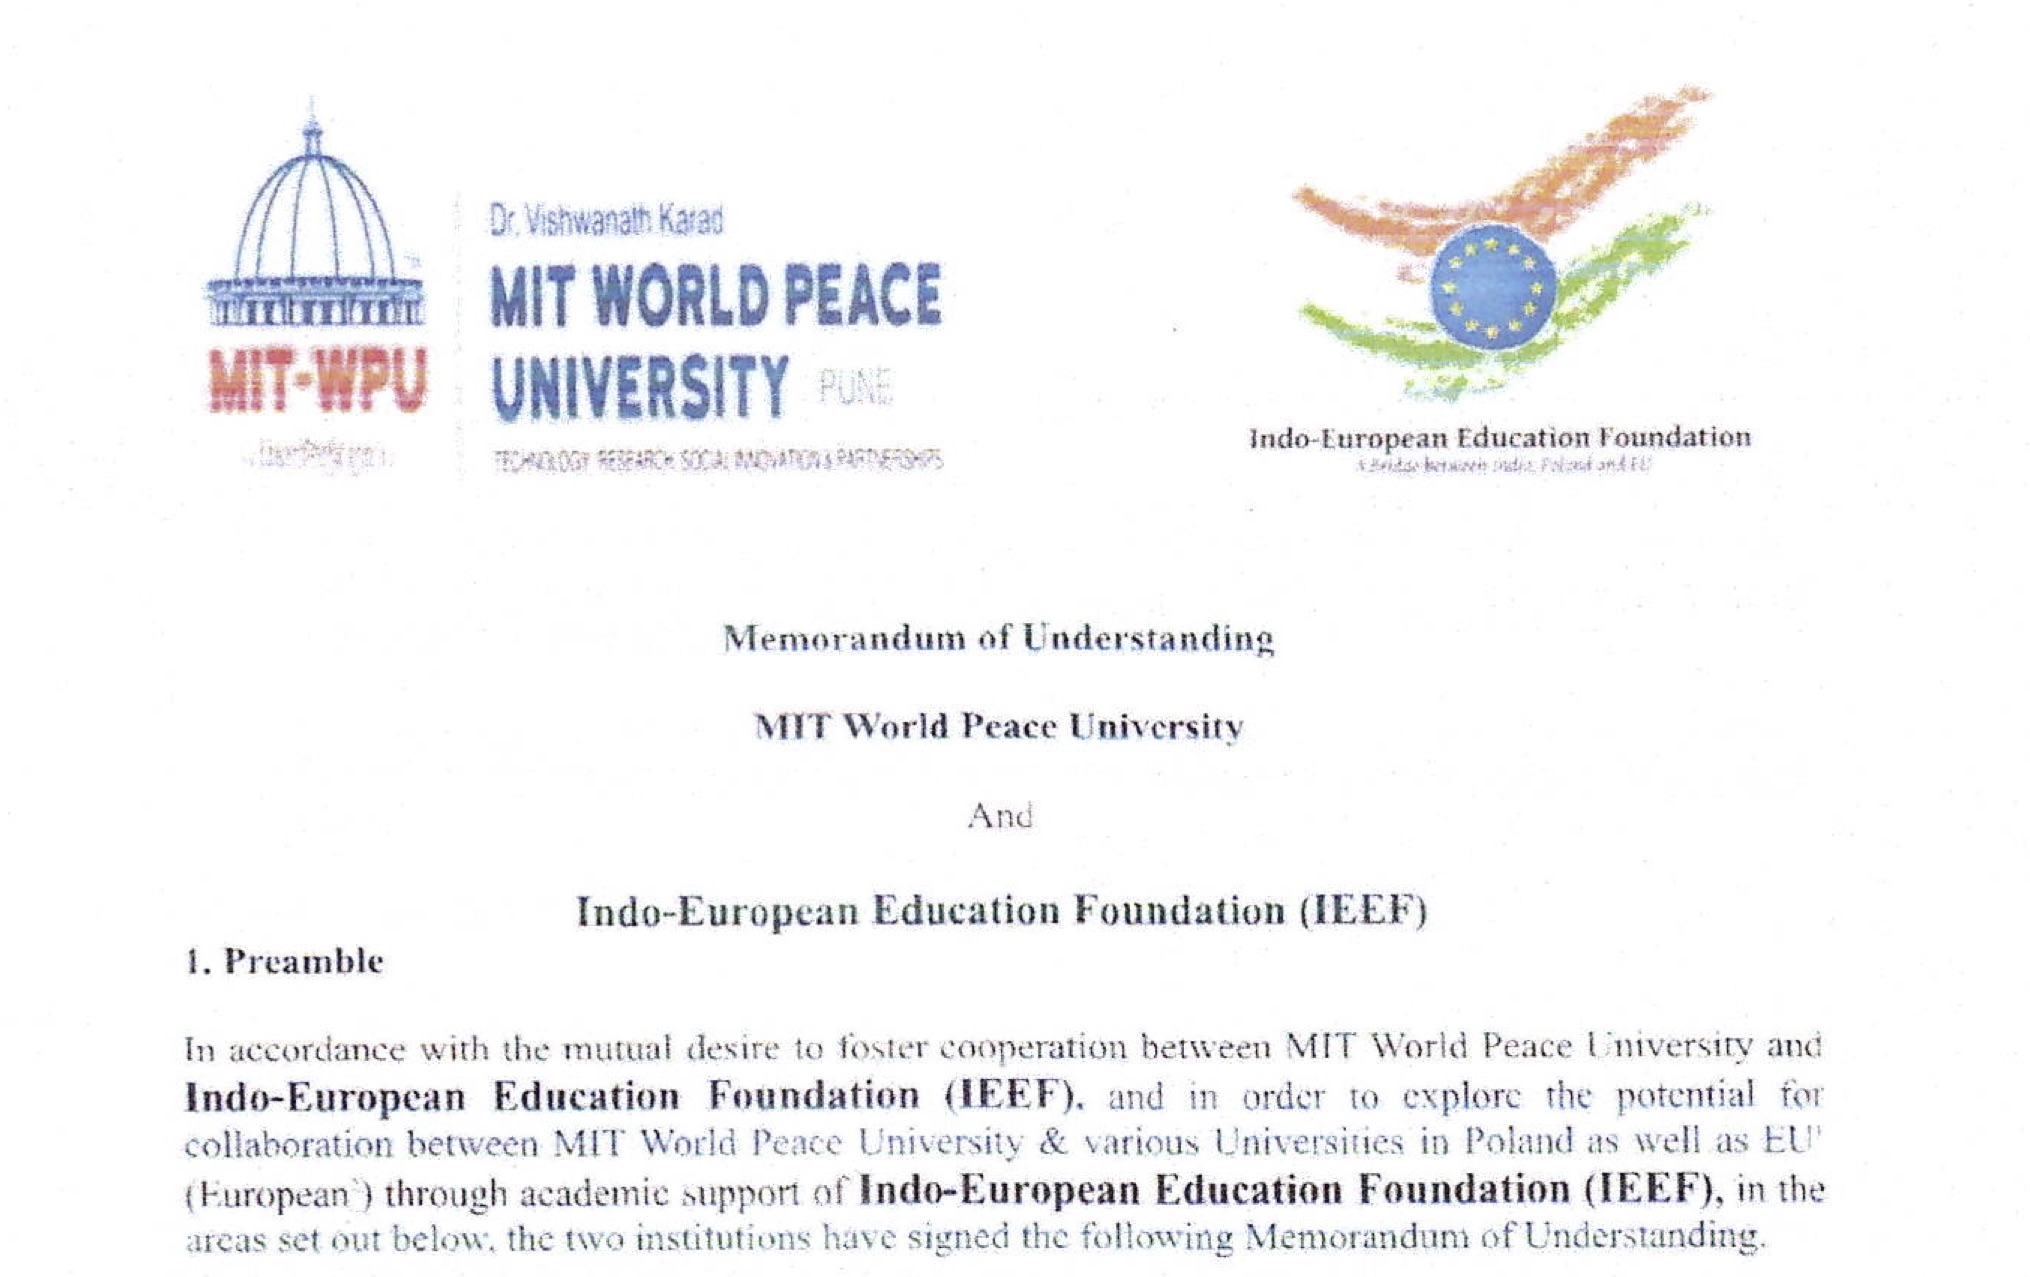 MOU between IEEF, Warsaw, and MIT World Peace University, Pune